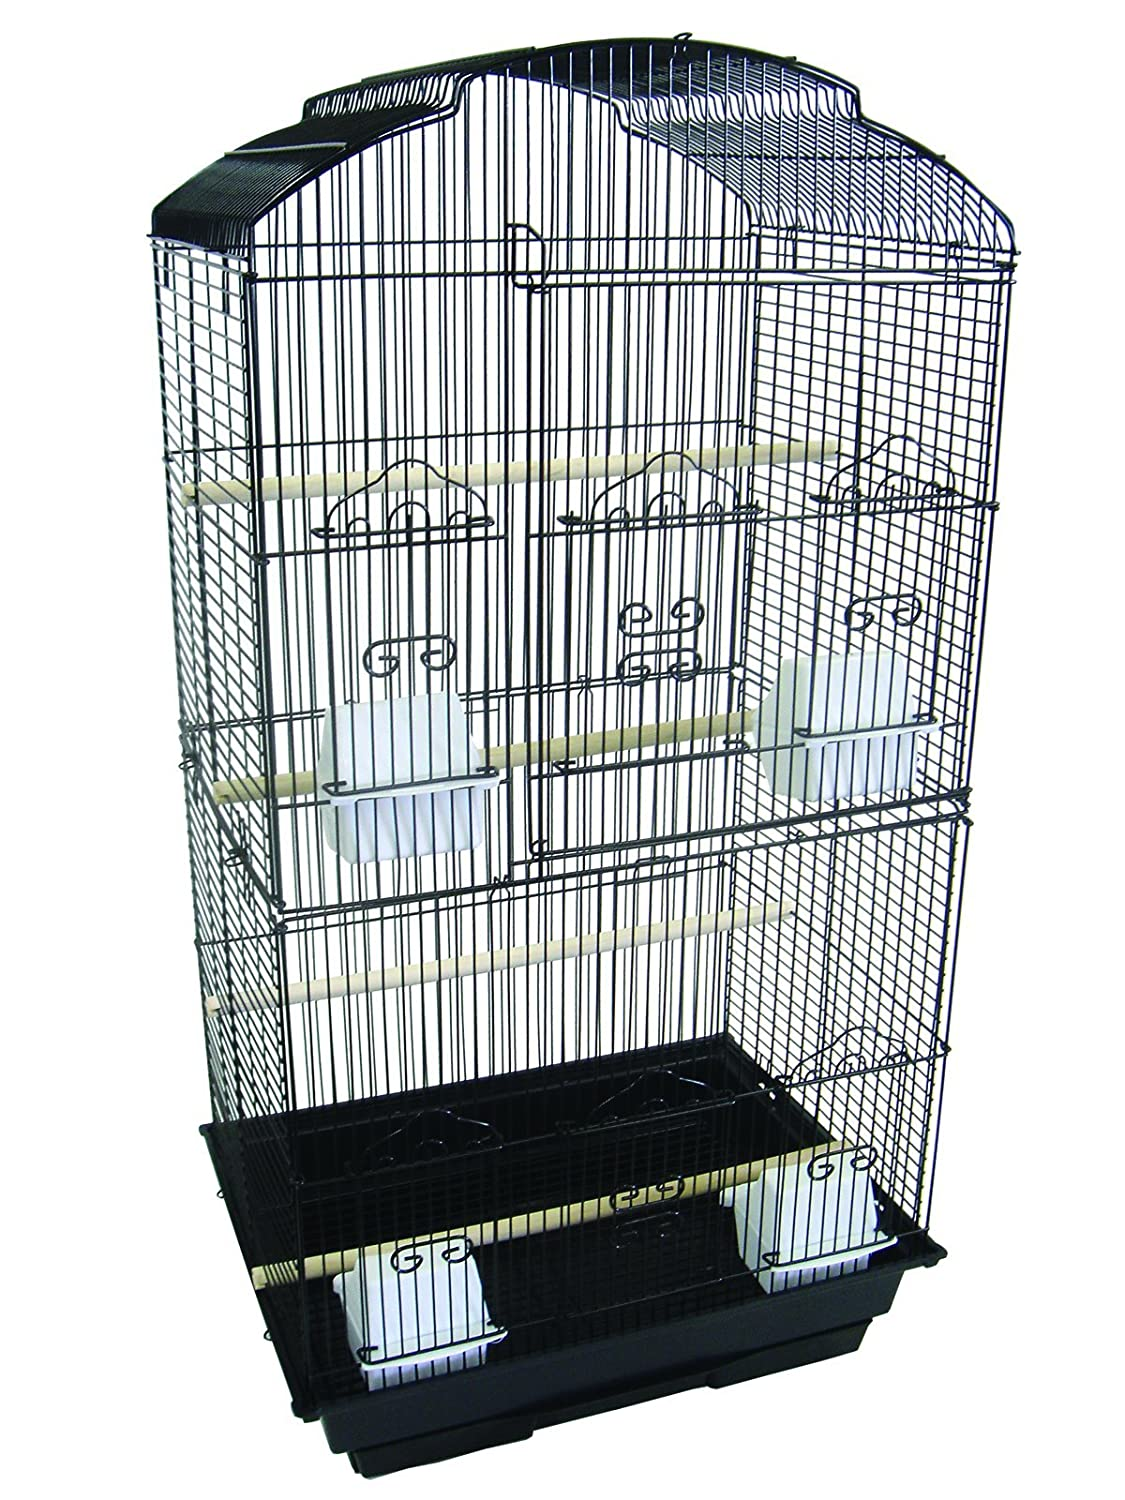 YML A6804 3/8-Inch Bar Spacing Tall Shall Top Small Bird Cage, 18-Inch by 14-Inch, Black